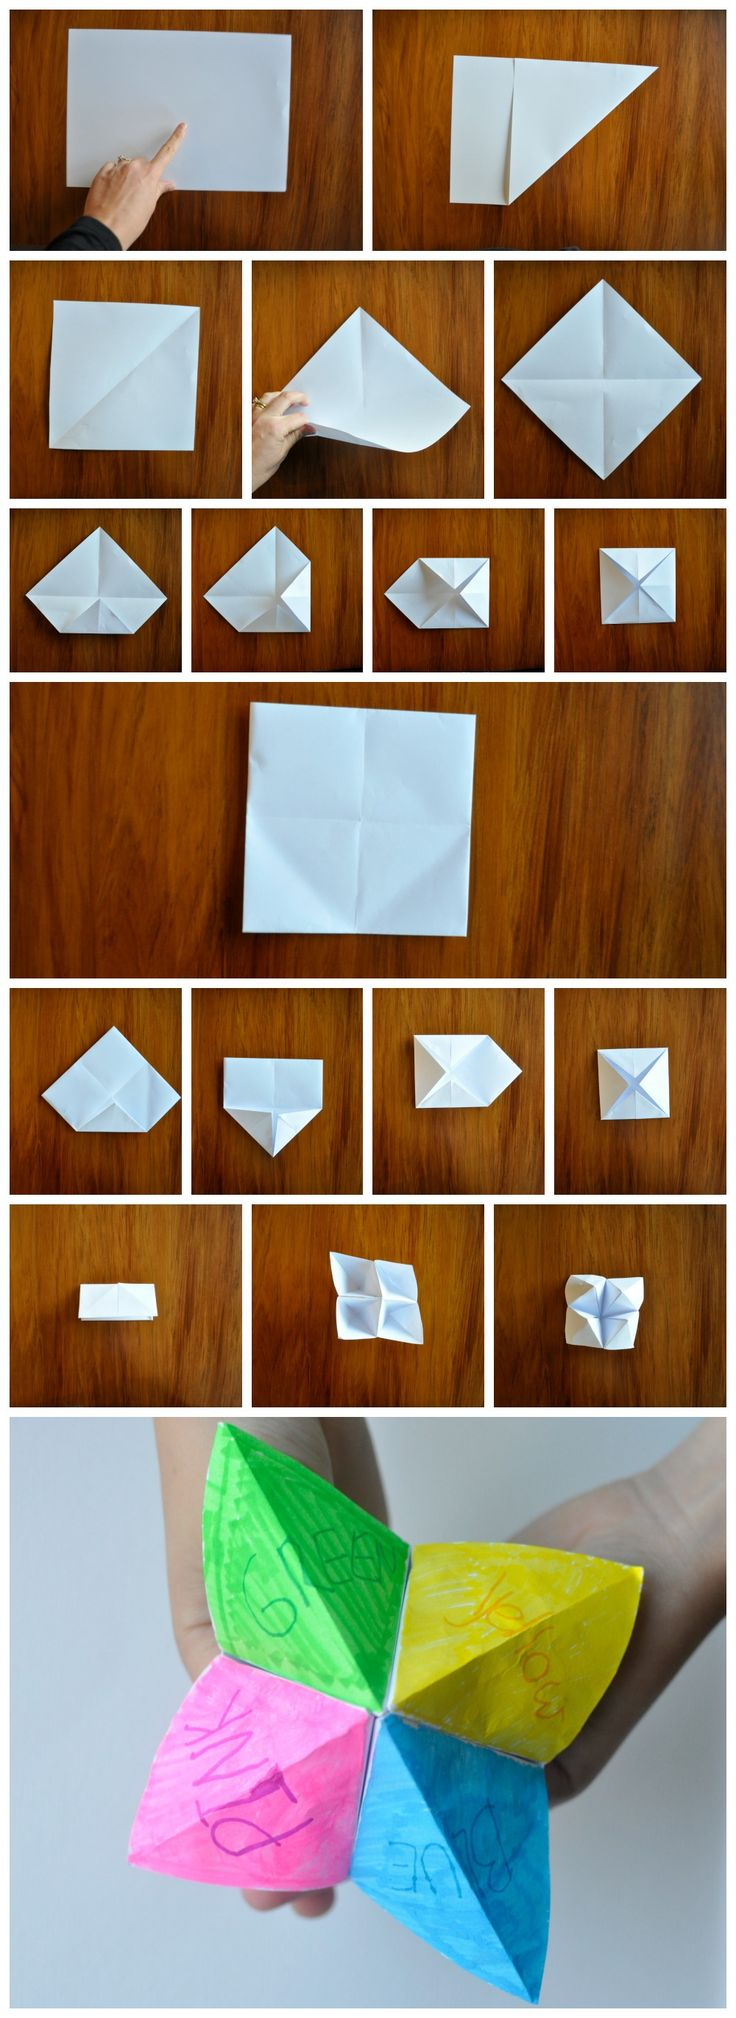 How to make a Chatterbox - Such a classic game. You can make it into a tool for many things, including birthday party games, travel, sight words, drama - heaps of ideas!